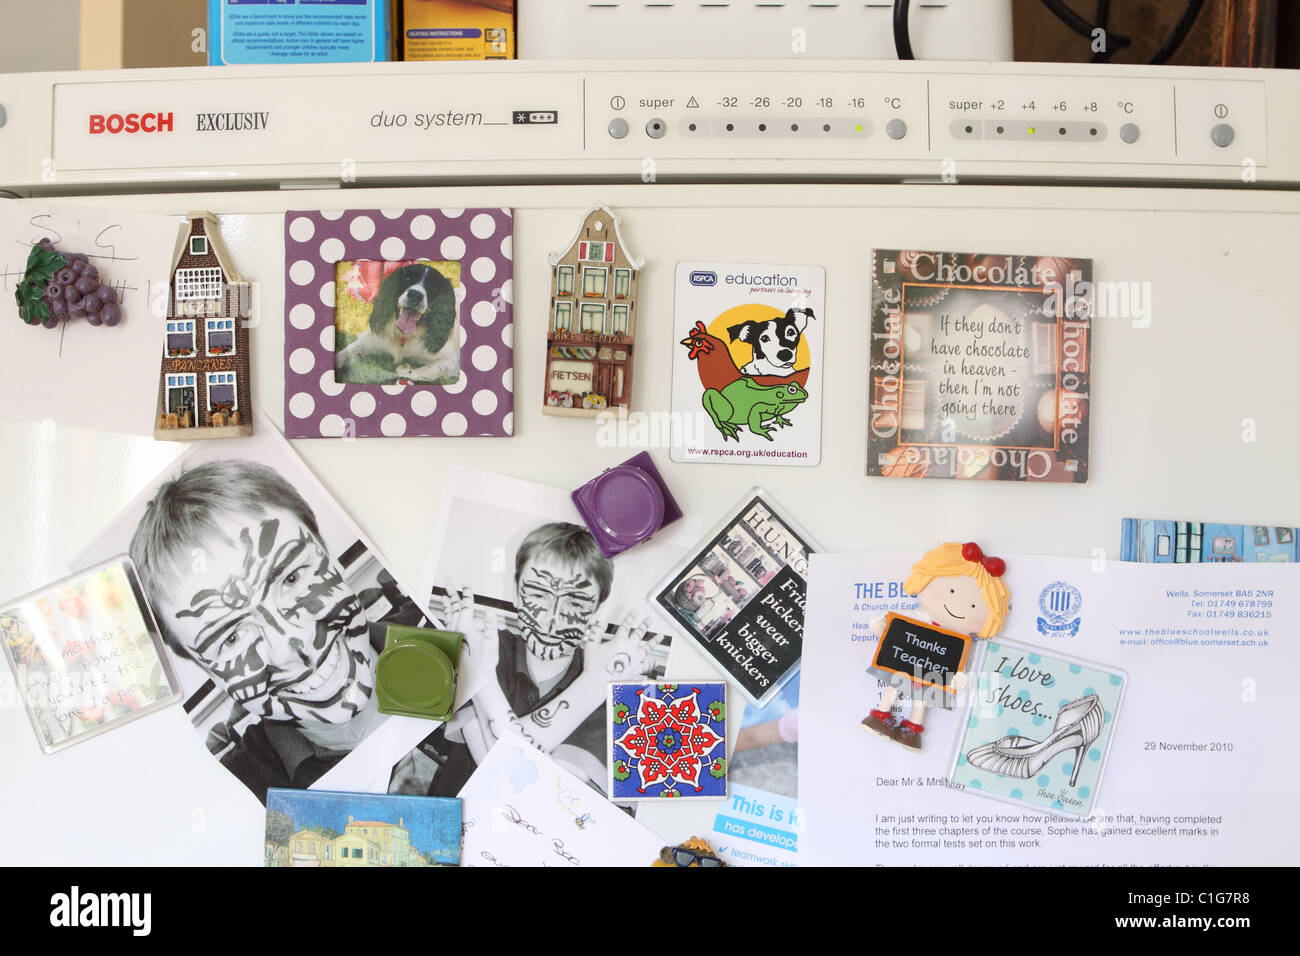 kitchen magnets reclaimed wood cabinets refrigerator stock photos fridge home reminders image